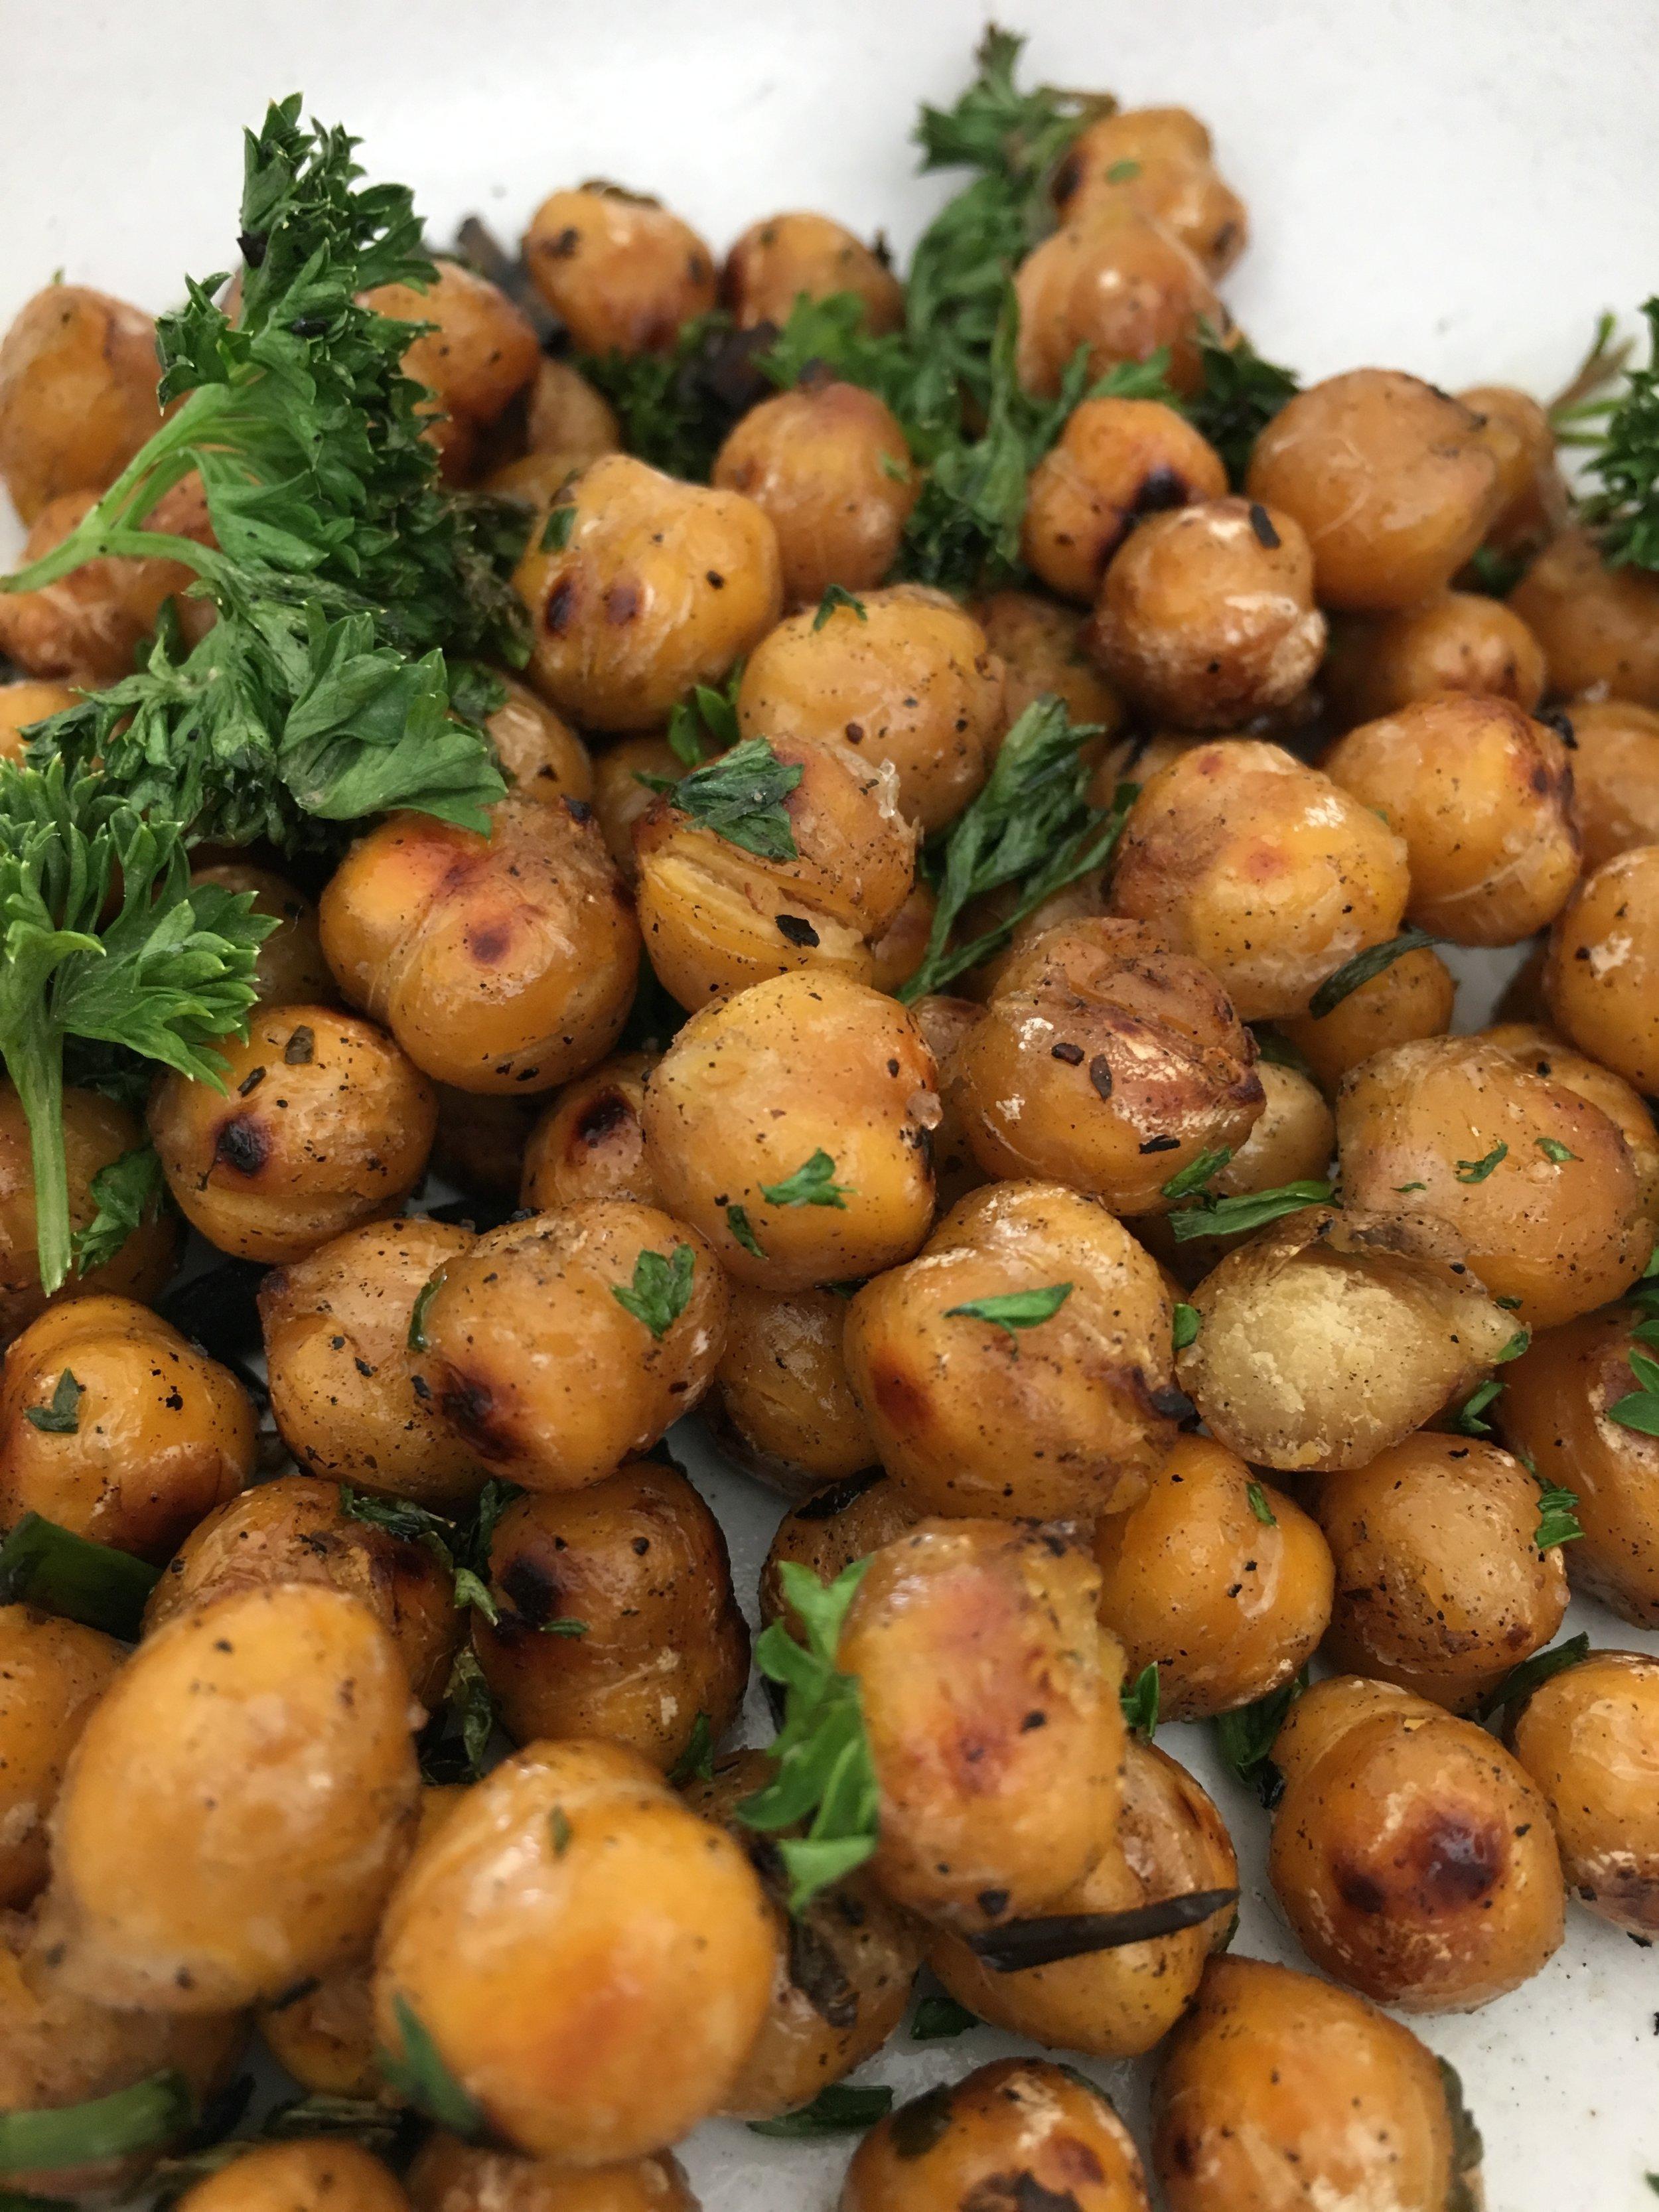 Herbed chickpeas for savory snack!